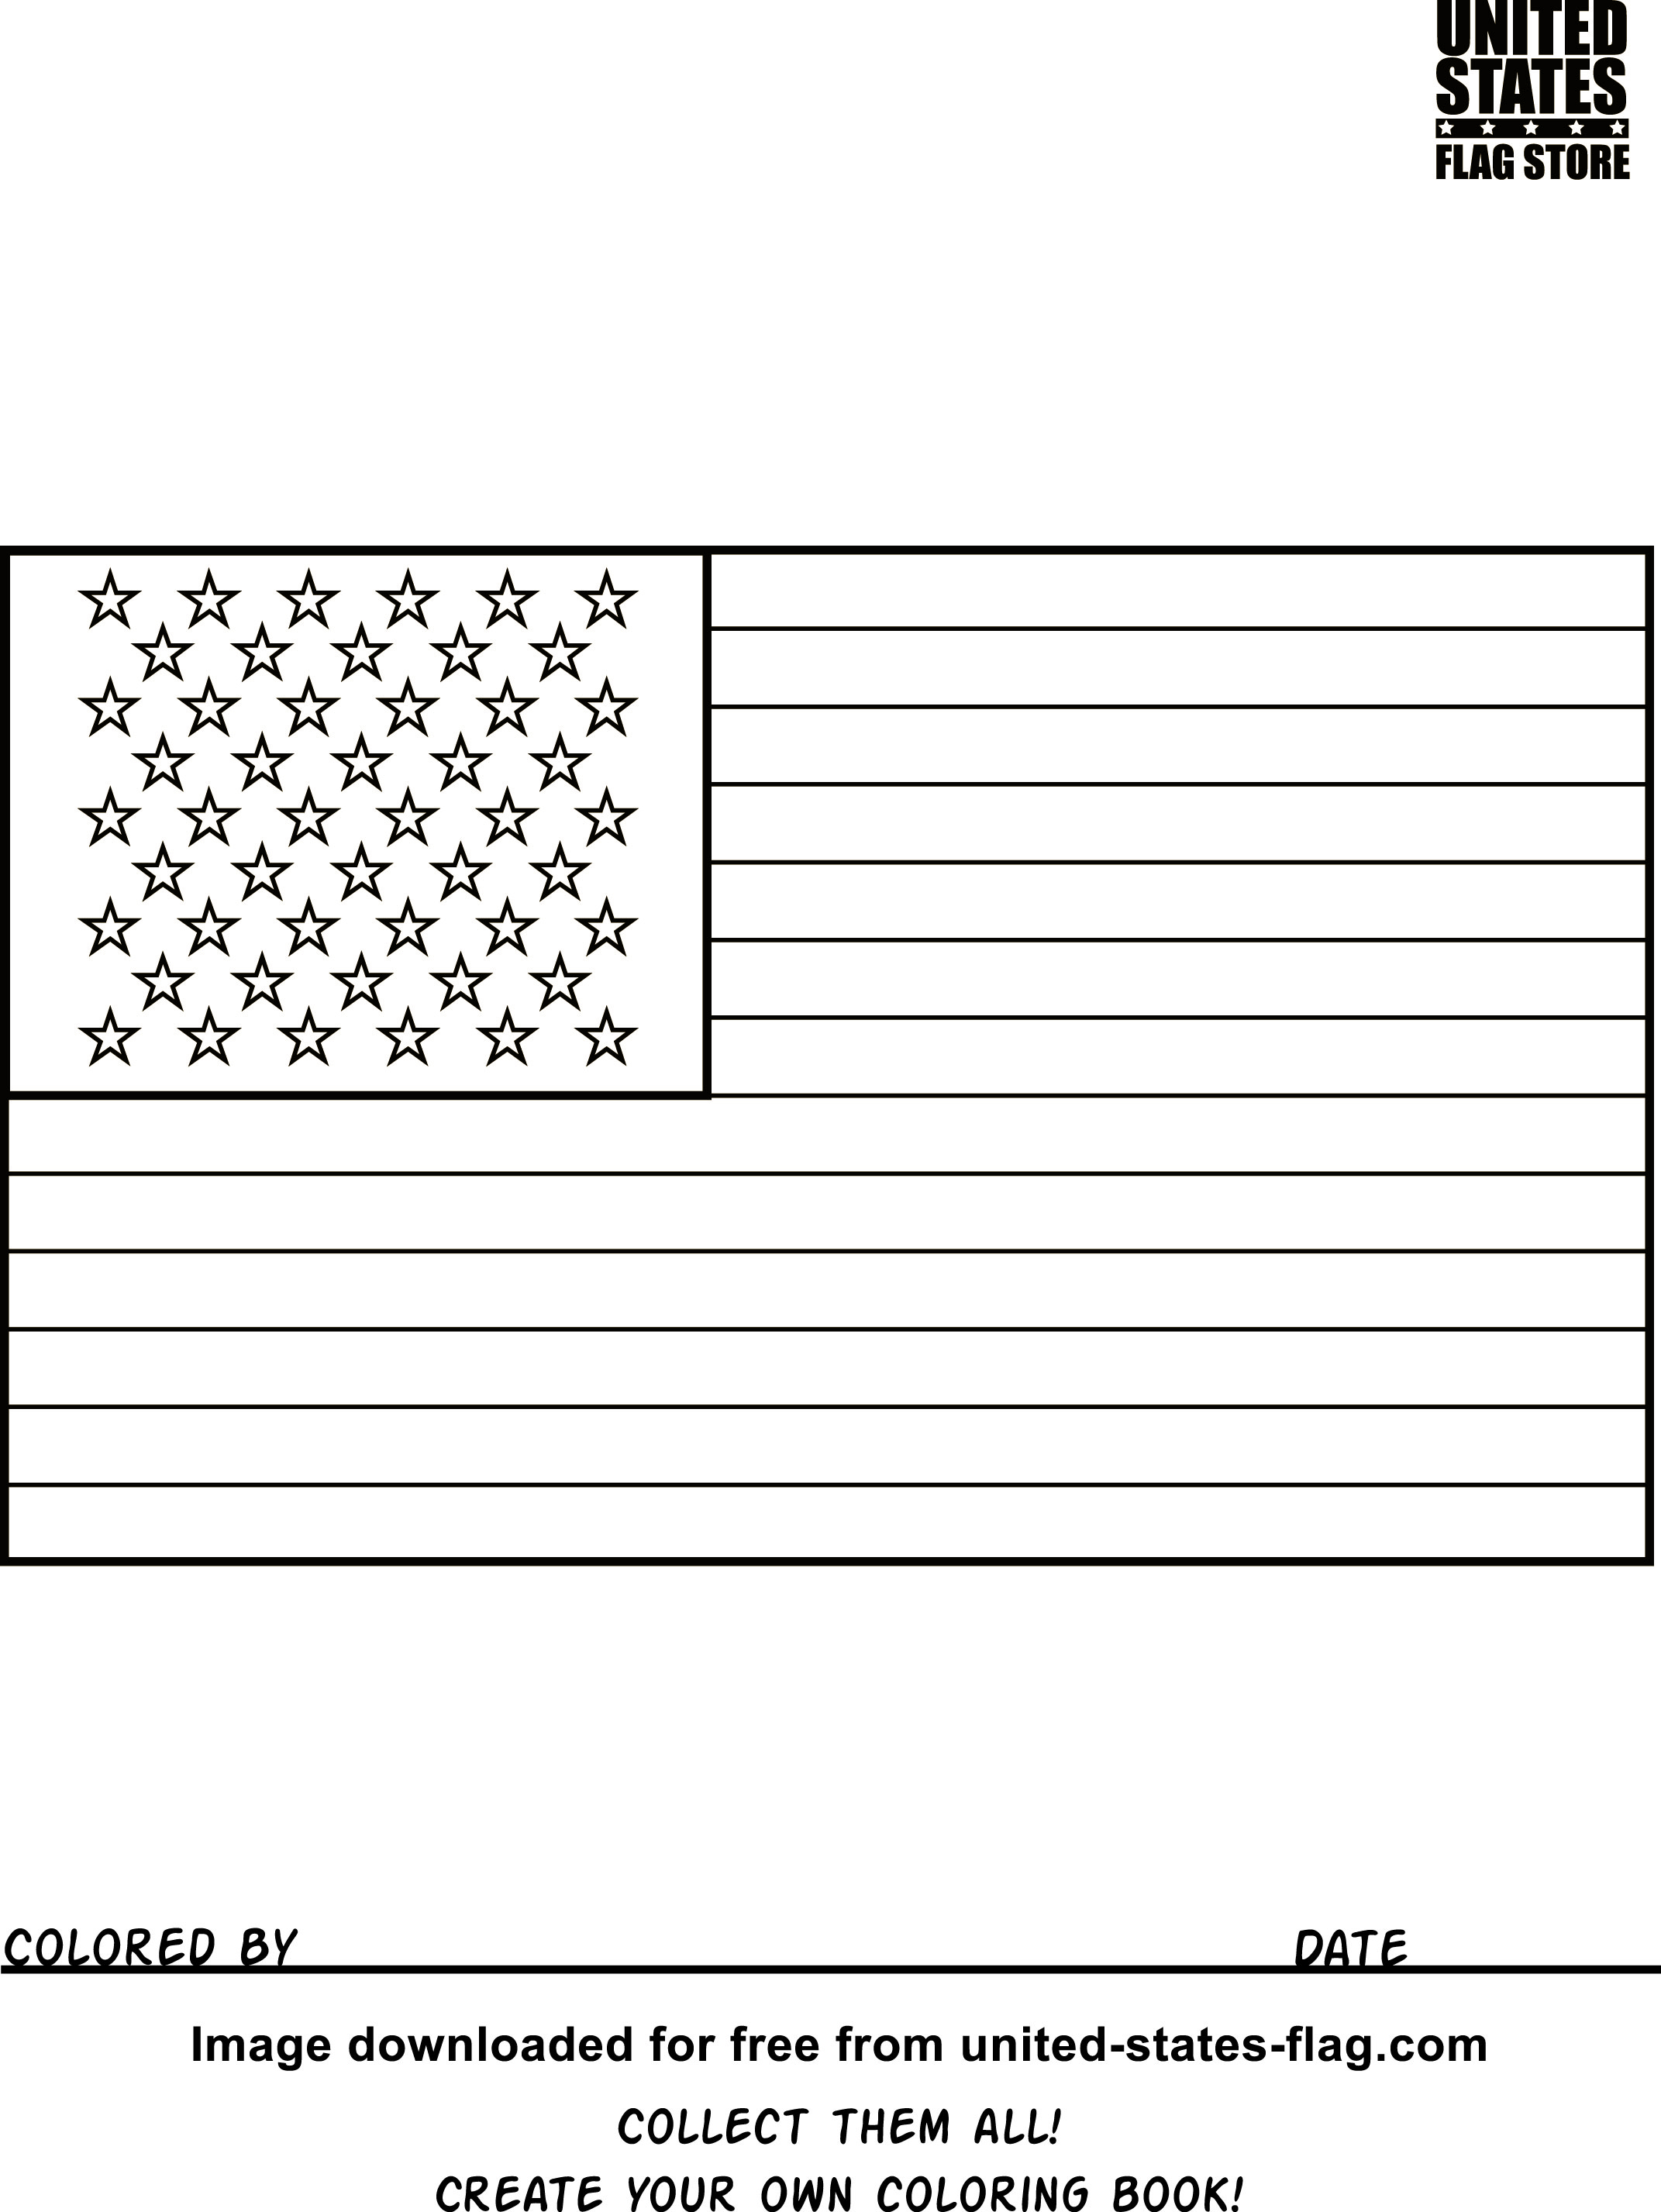 The American Flag Coloring Page Coloring Pages And Books Free American Flag Coloring Pages